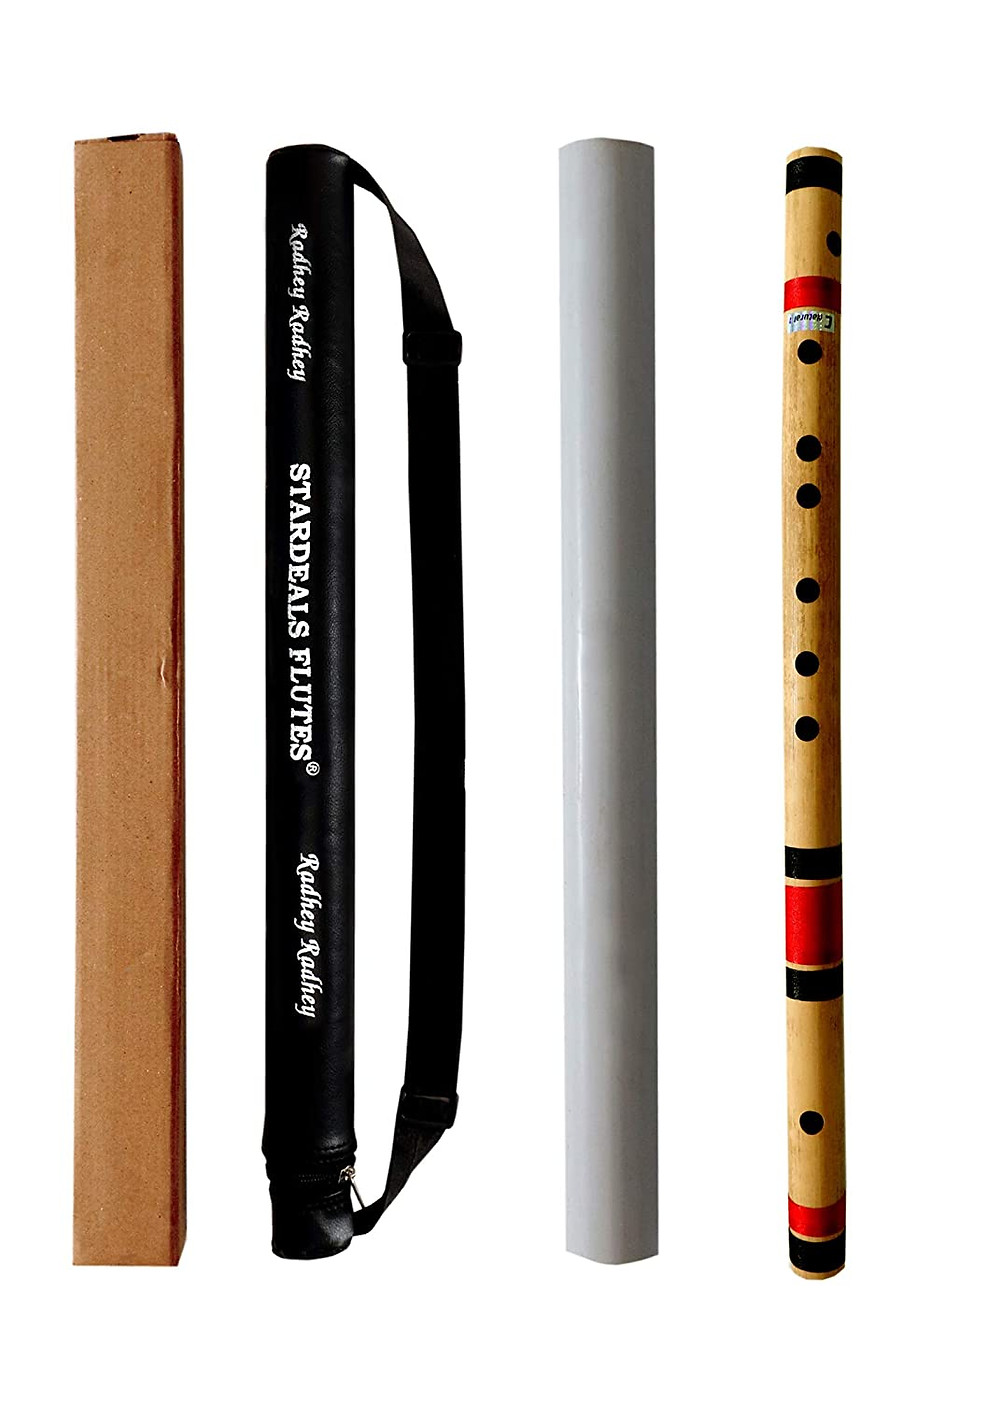 Amazon Purchase link to STARDEALS C Natural 7 Hole Right Hand Bamboo Flute Bansuri Size 19 Inch With Free Carry Bag (Natural Brown)